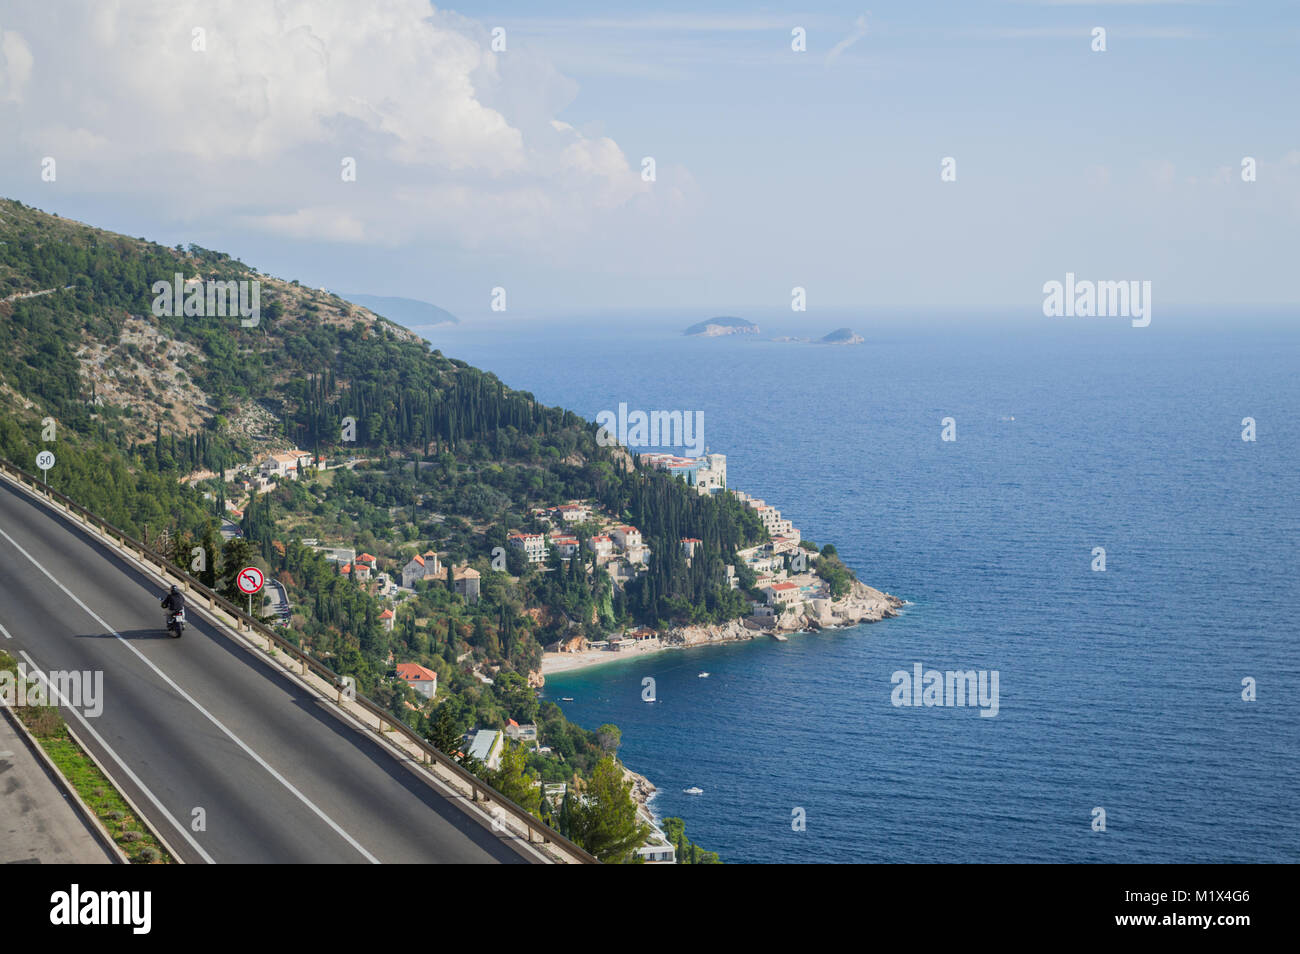 Picturesque Coastal Road with Motorcycle and View onto Dubrovnik, Croatia - Stock Image